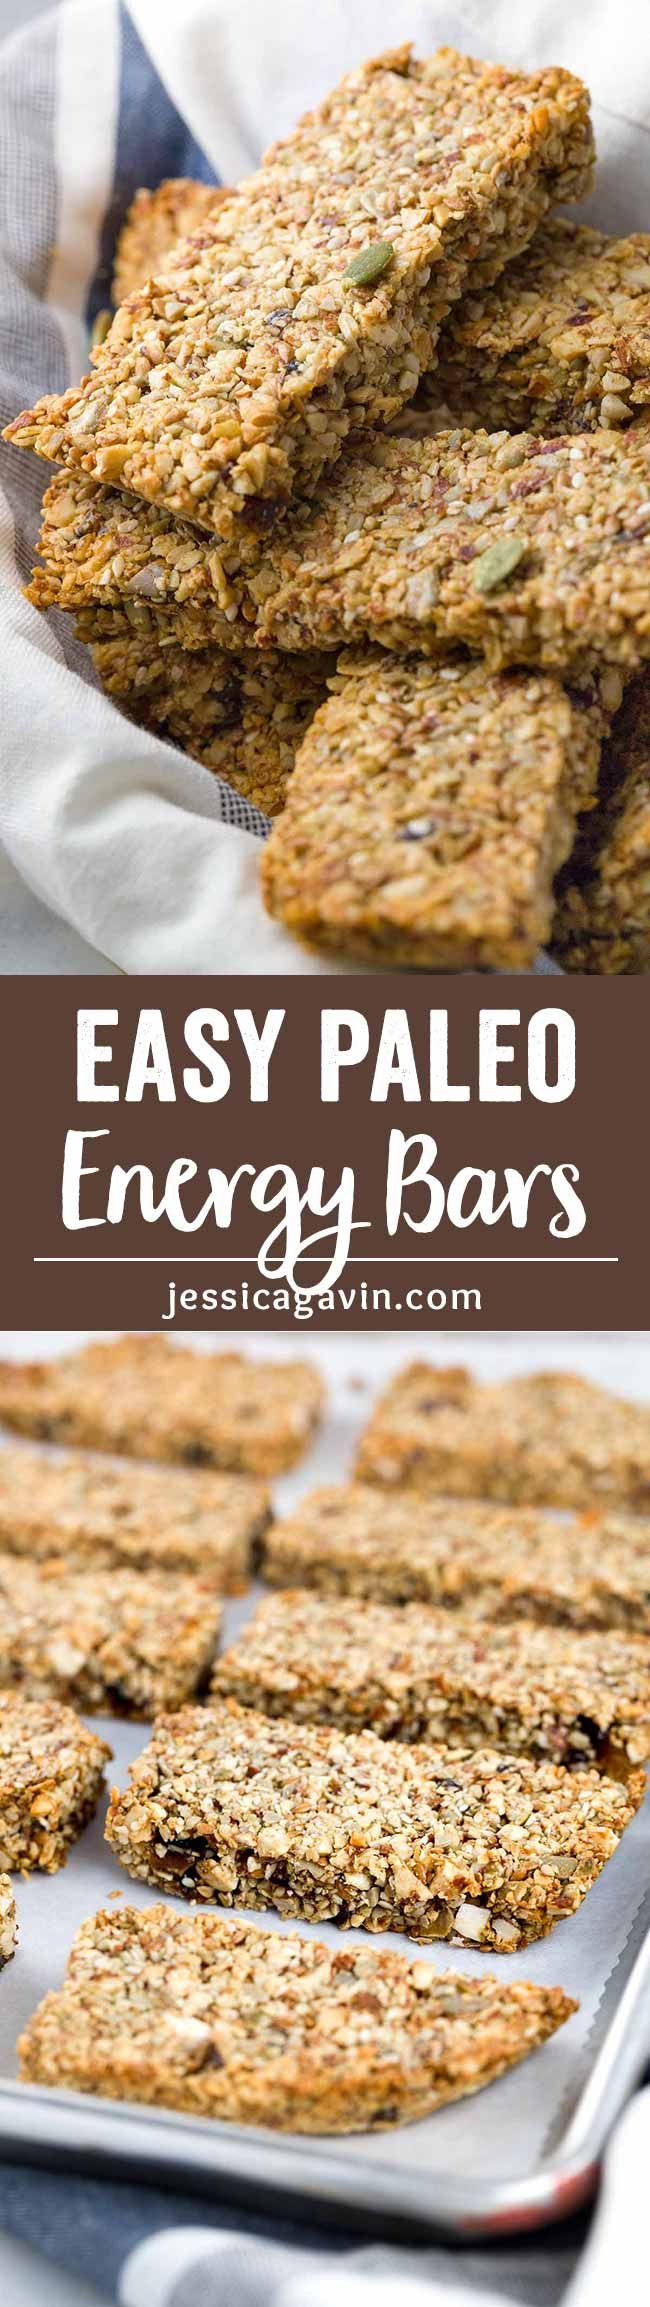 Baked Paleo Energy Bars - This recipe has a mixture of ground nuts, seeds, and a touch of maple syrup for a healthy portable snack bar on the go!  via @foodiegavin